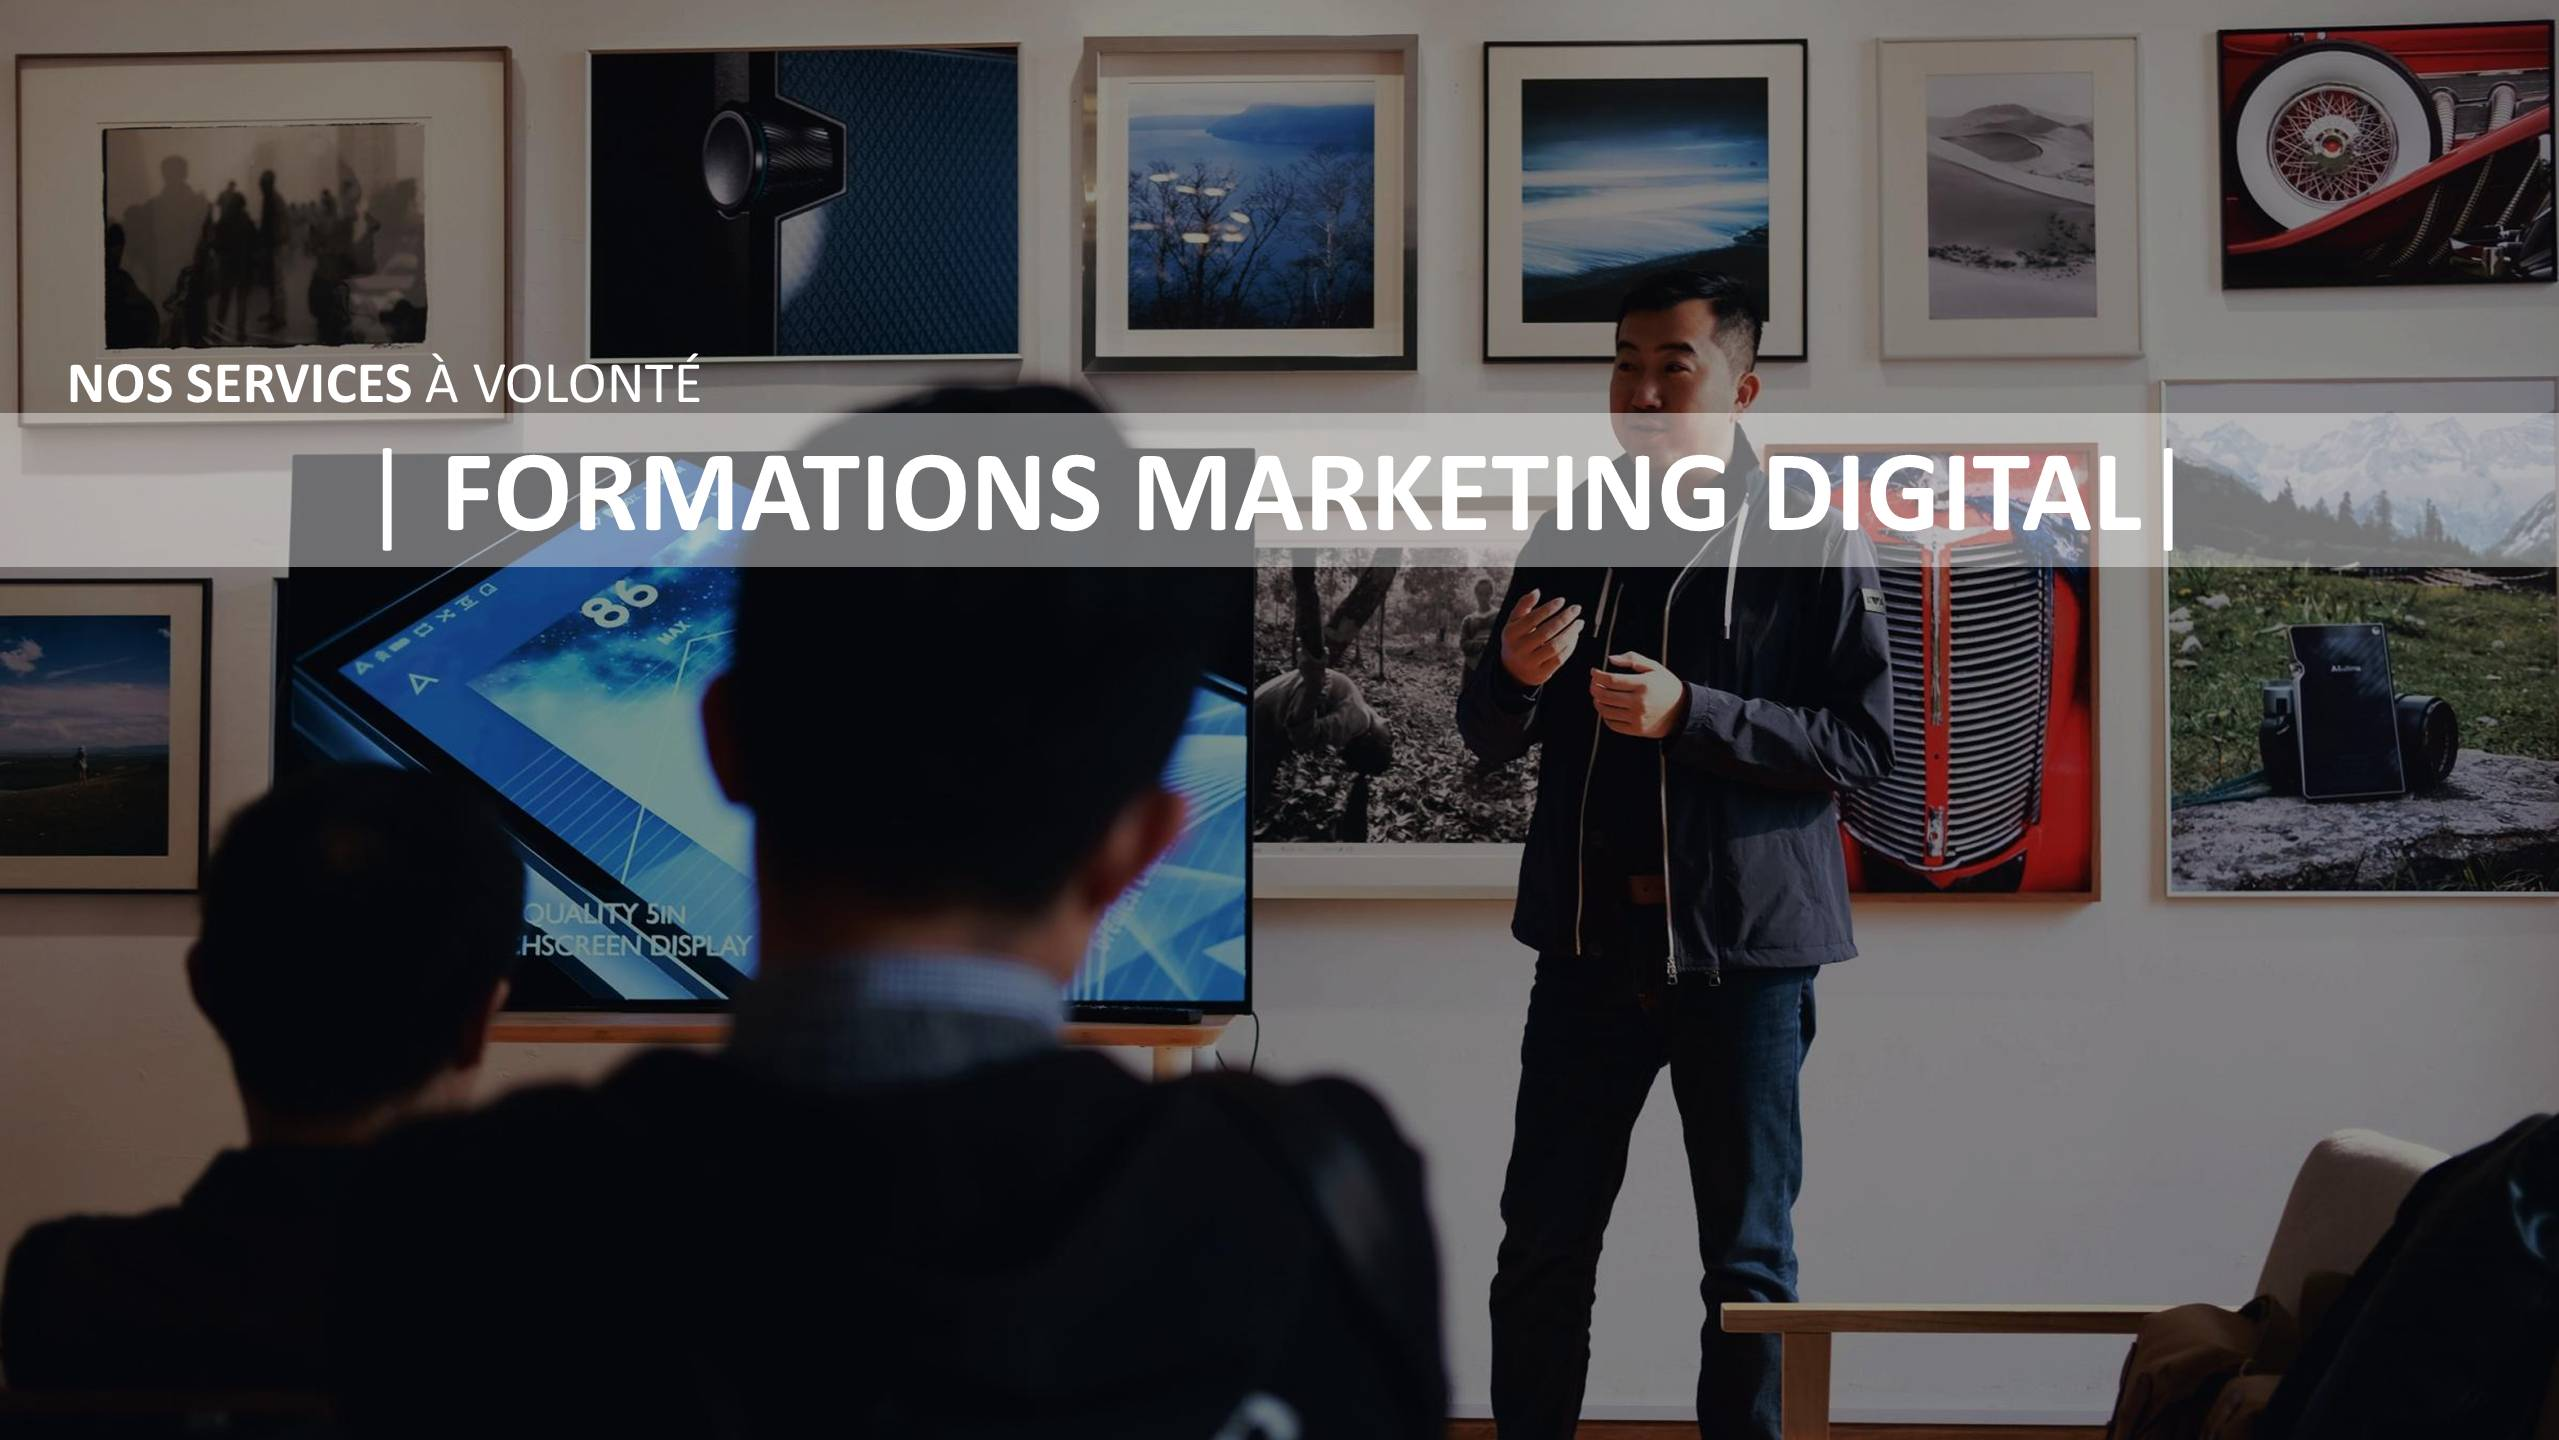 KLAS PARIS - FORMATIONS MARKETING DIGITAL